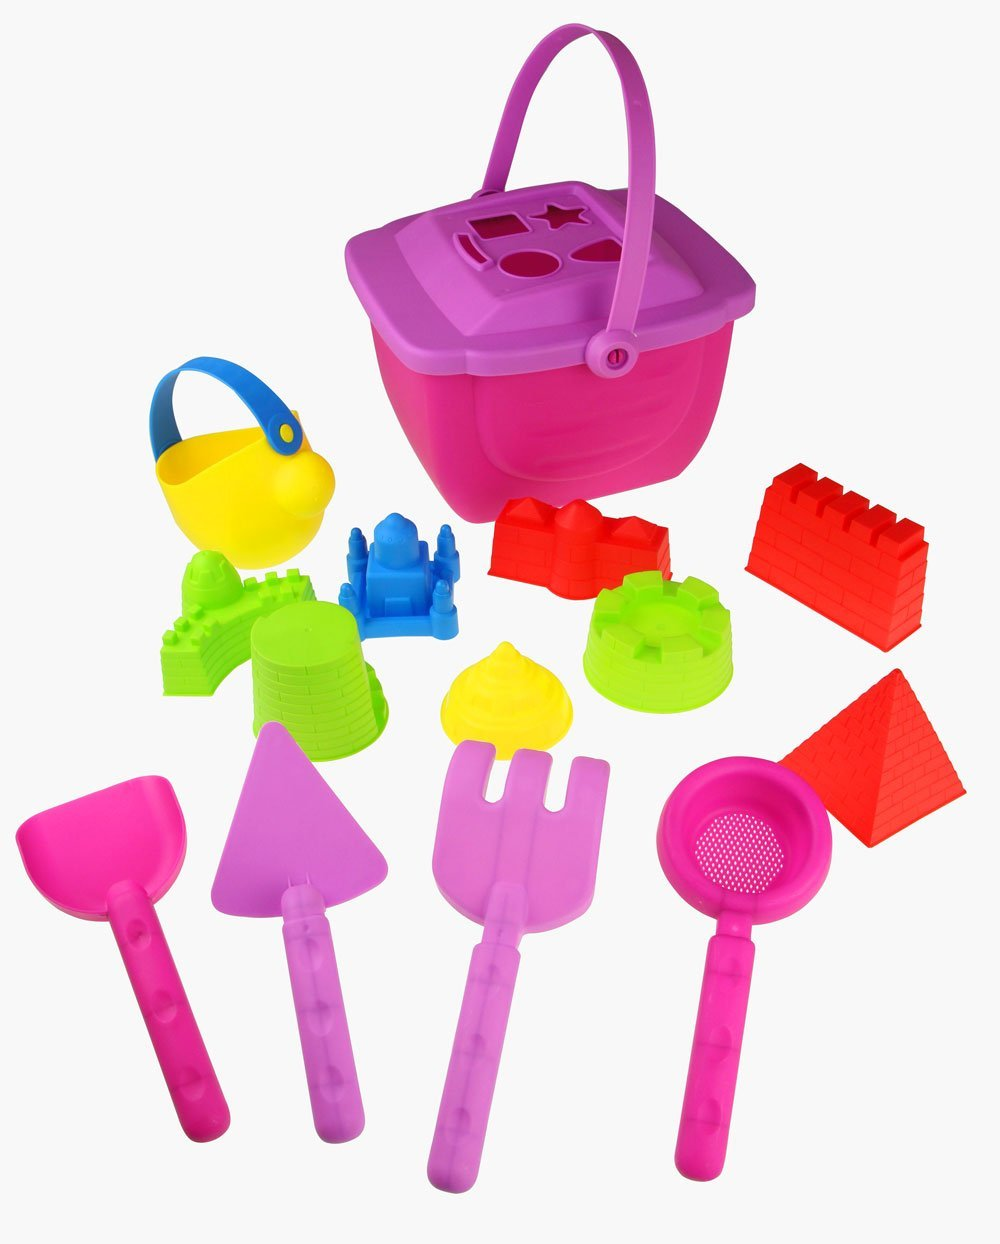 15-Pieces Beach Sand Toys Set for Girls by